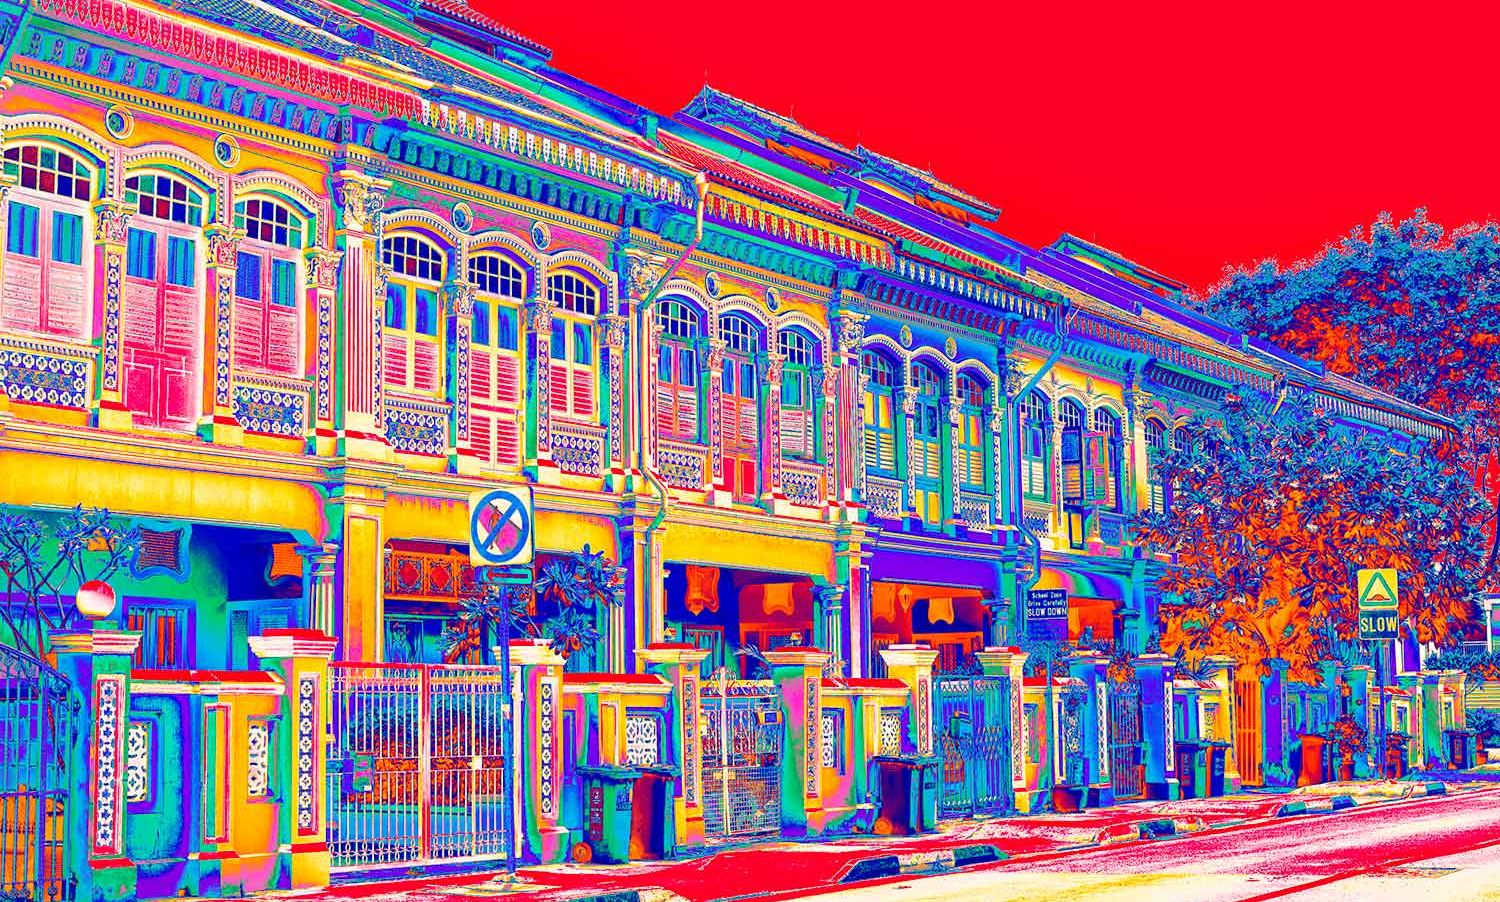 Singapore Shophouses Linda Preece